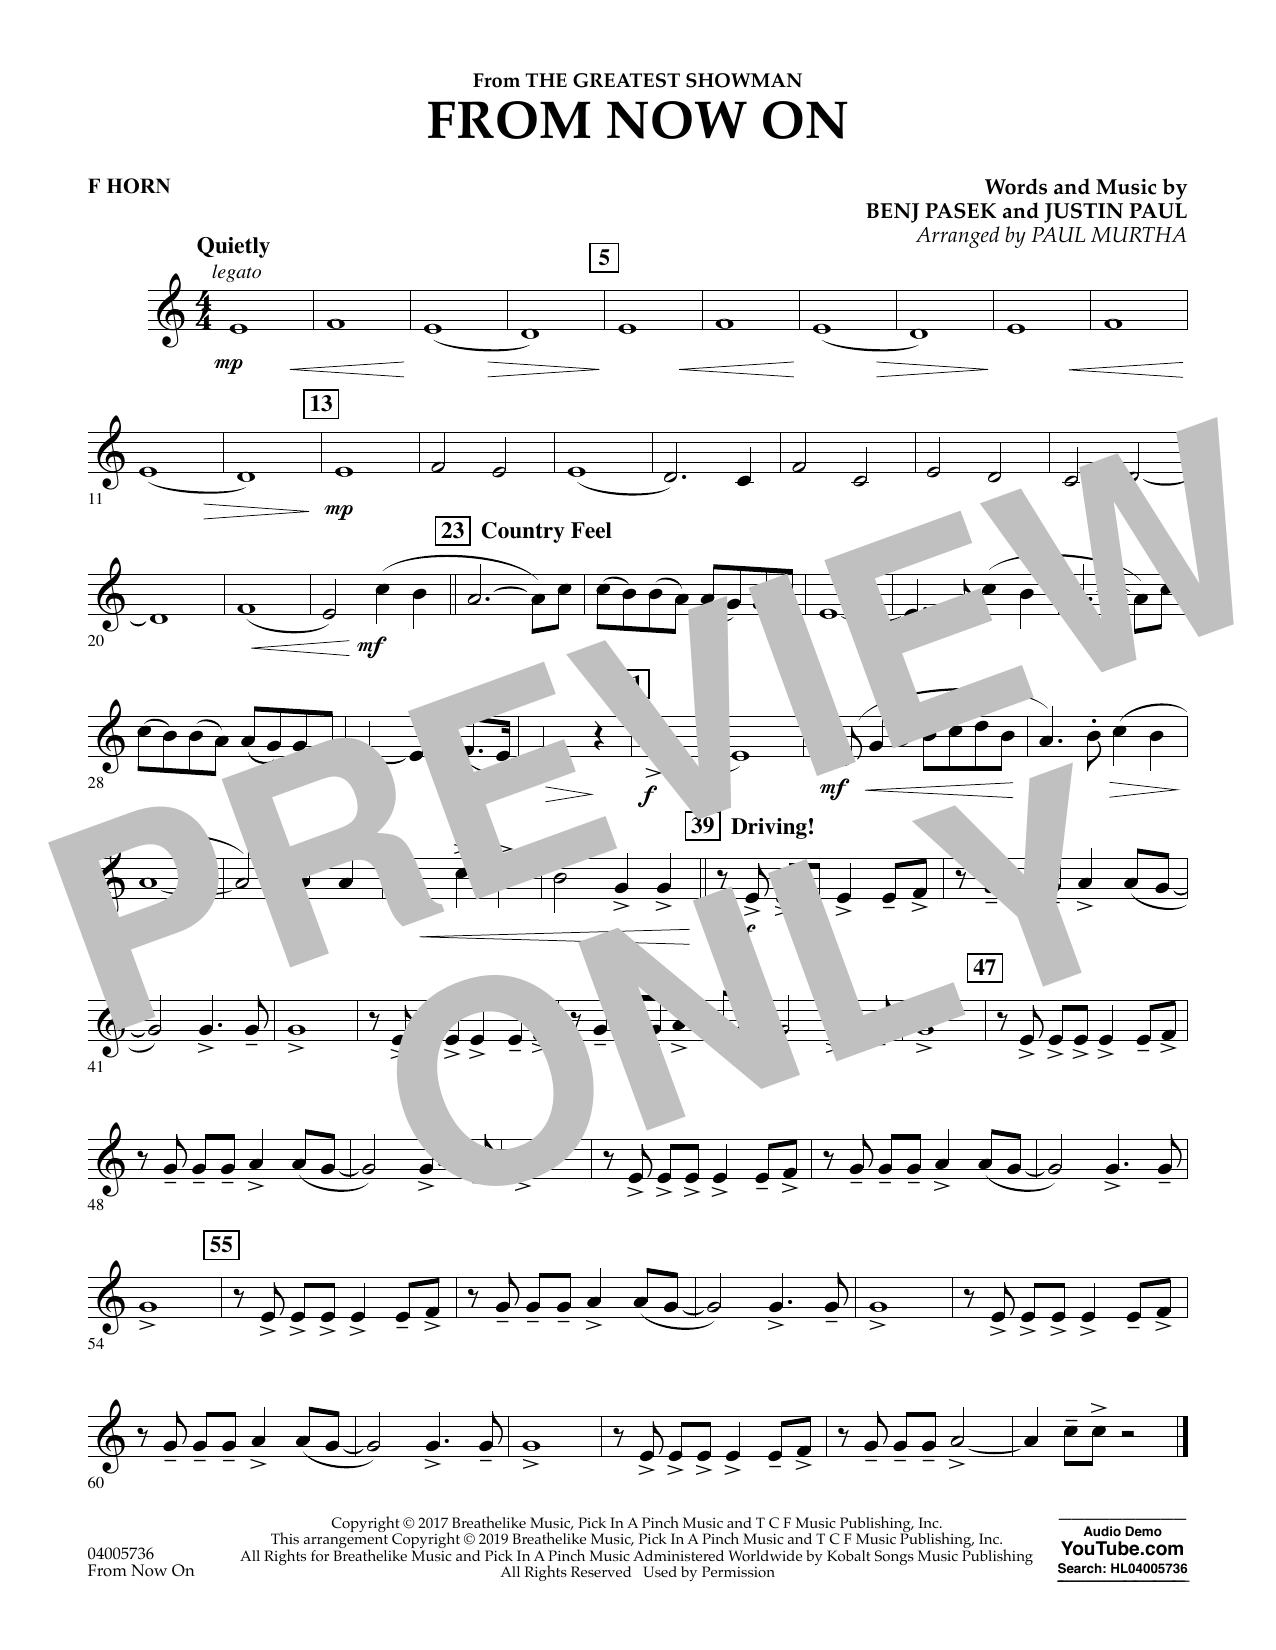 From Now On (from The Greatest Showman) (arr. Paul Murtha) - F Horn (Concert Band)